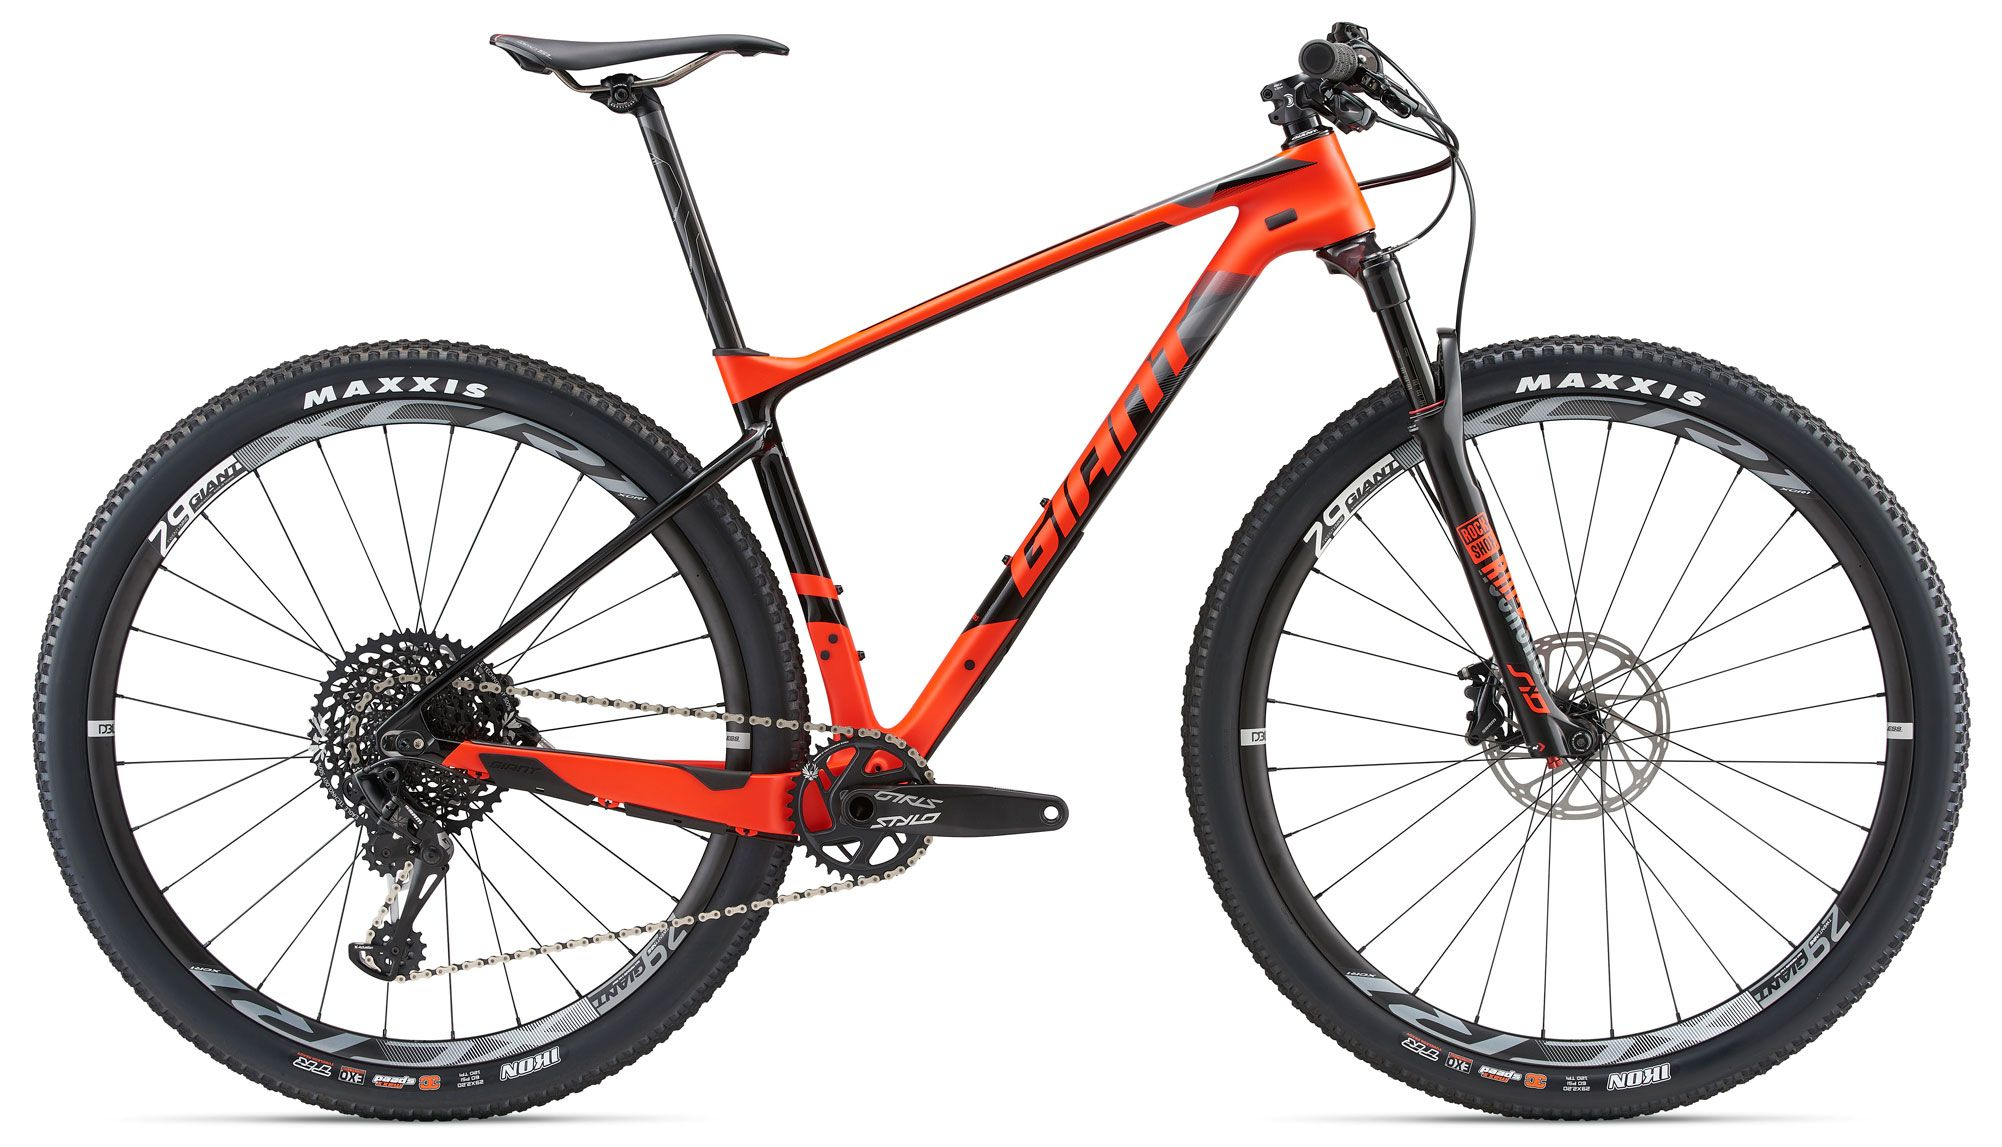 Велосипед Giant XTC Advanced 29er 1 2018 велосипед giant talon 29er 2 blk 2014